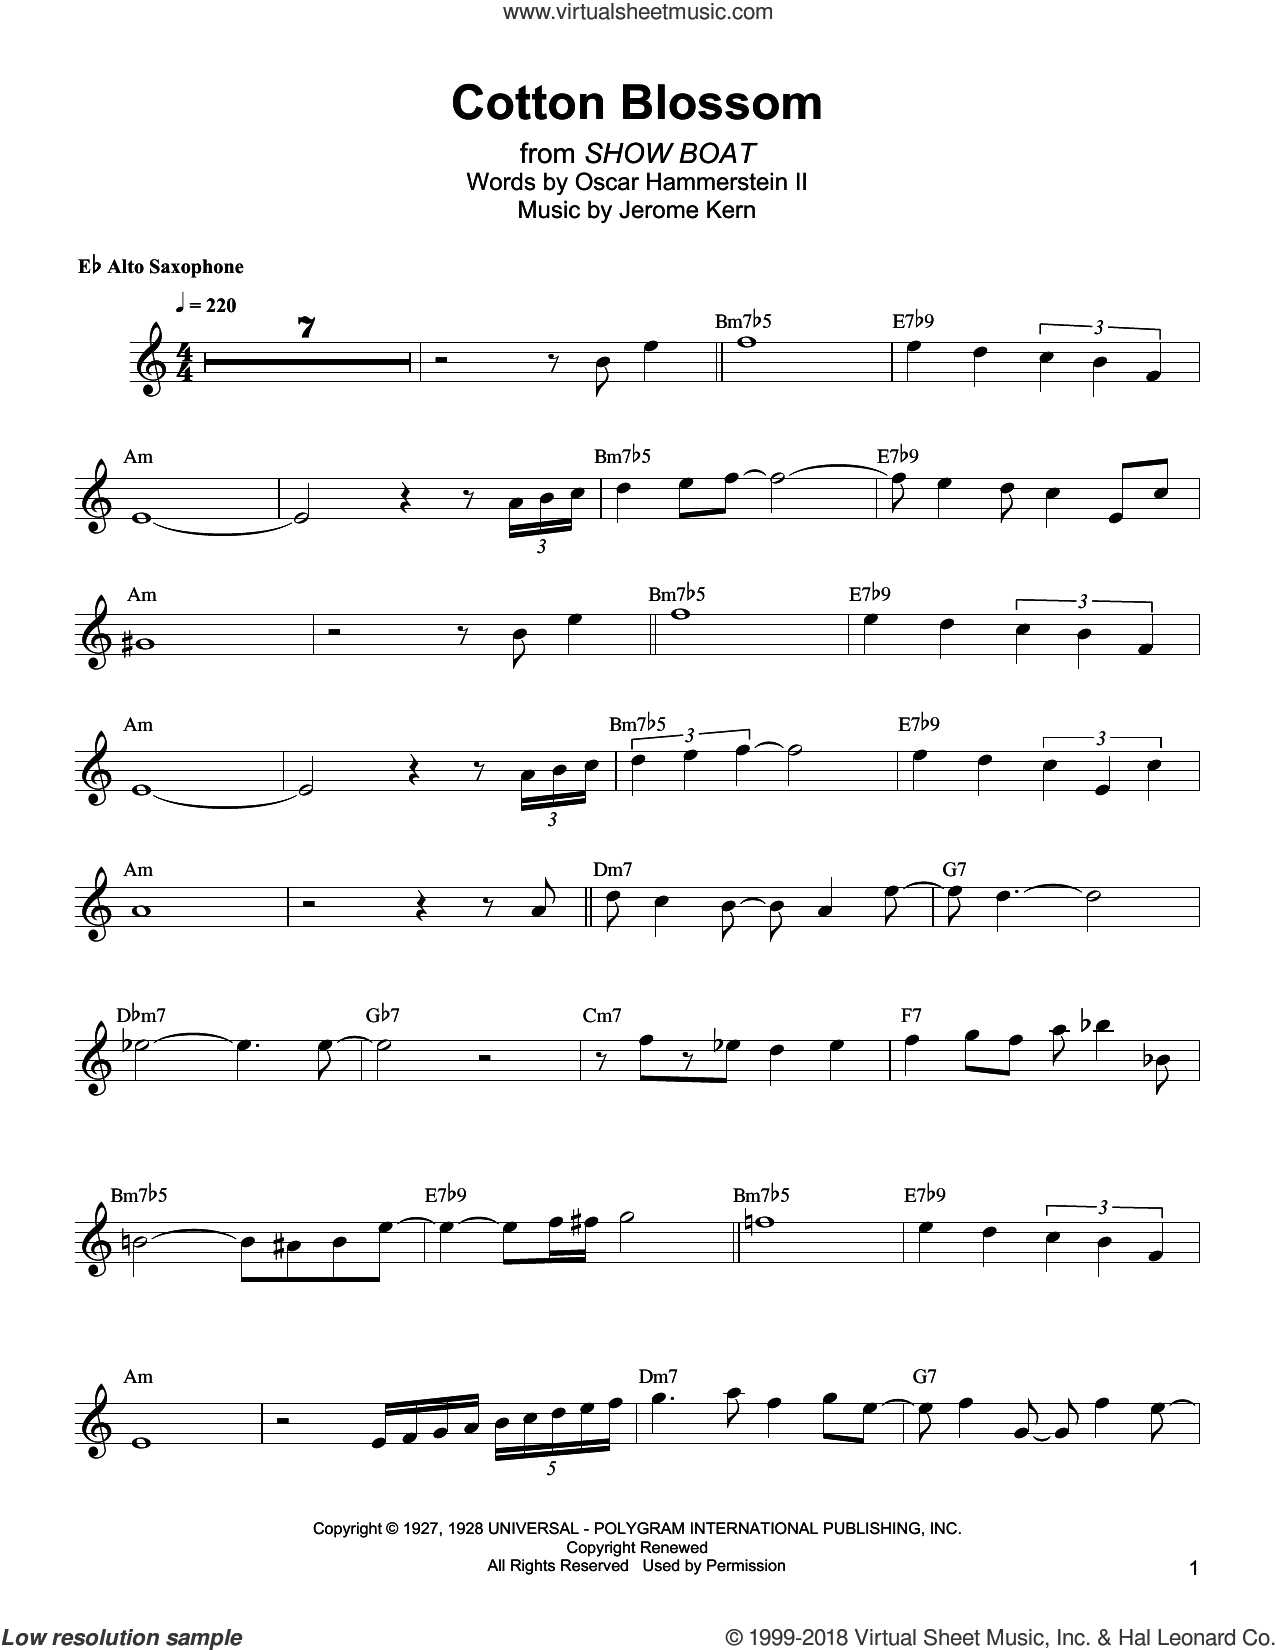 Cotton Blossom sheet music for alto saxophone (transcription) by Bud Shank, Jerome Kern and Oscar II Hammerstein, intermediate skill level